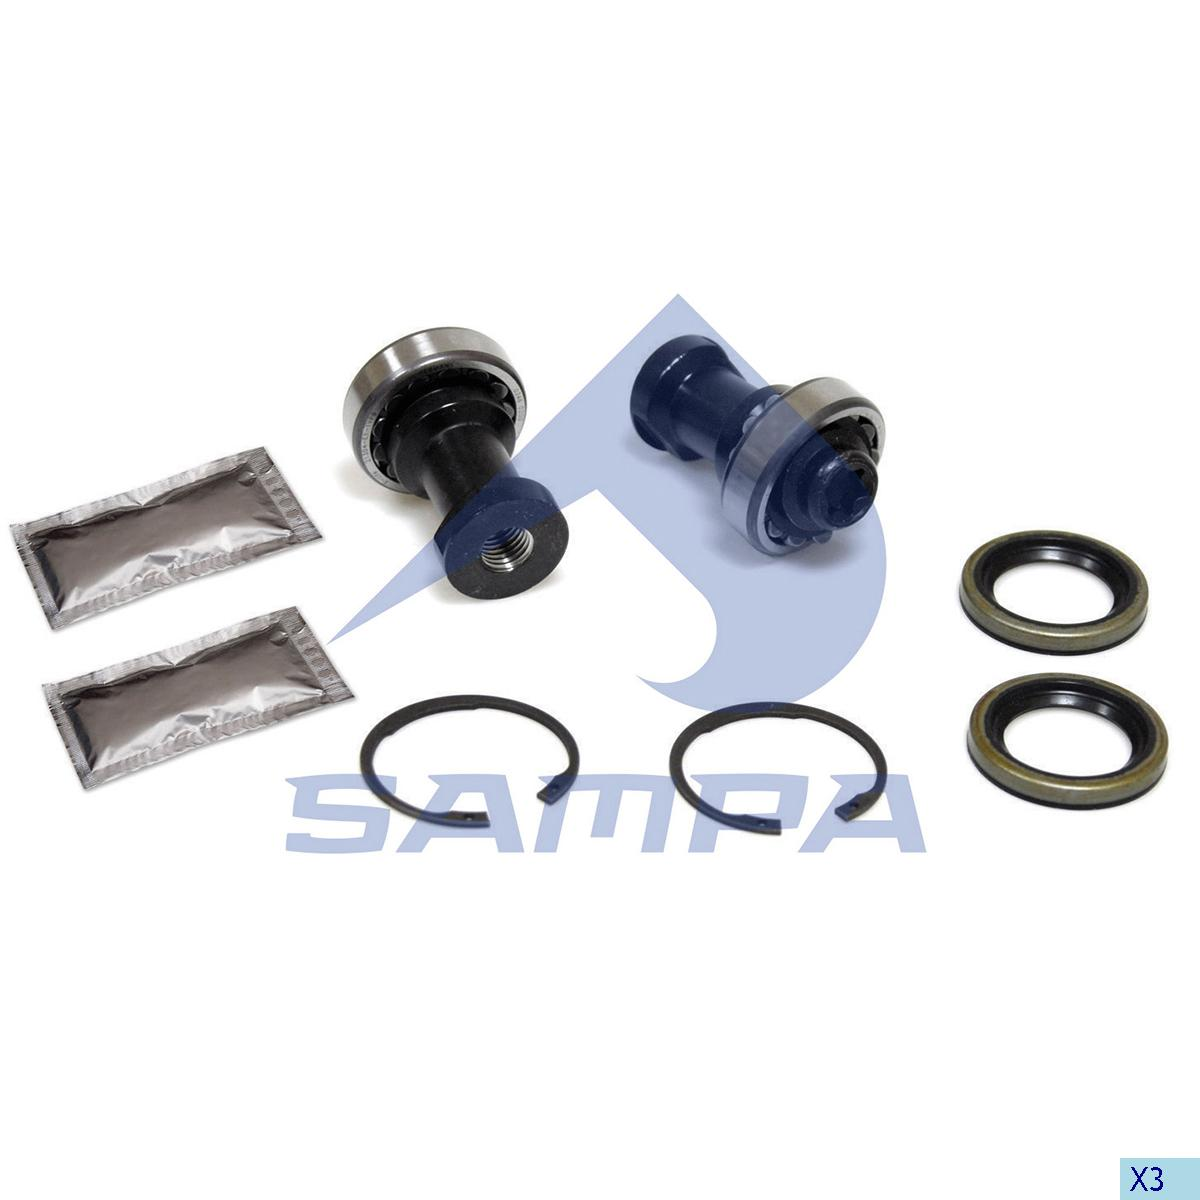 Repair Kit, Cab, Scania, Cab